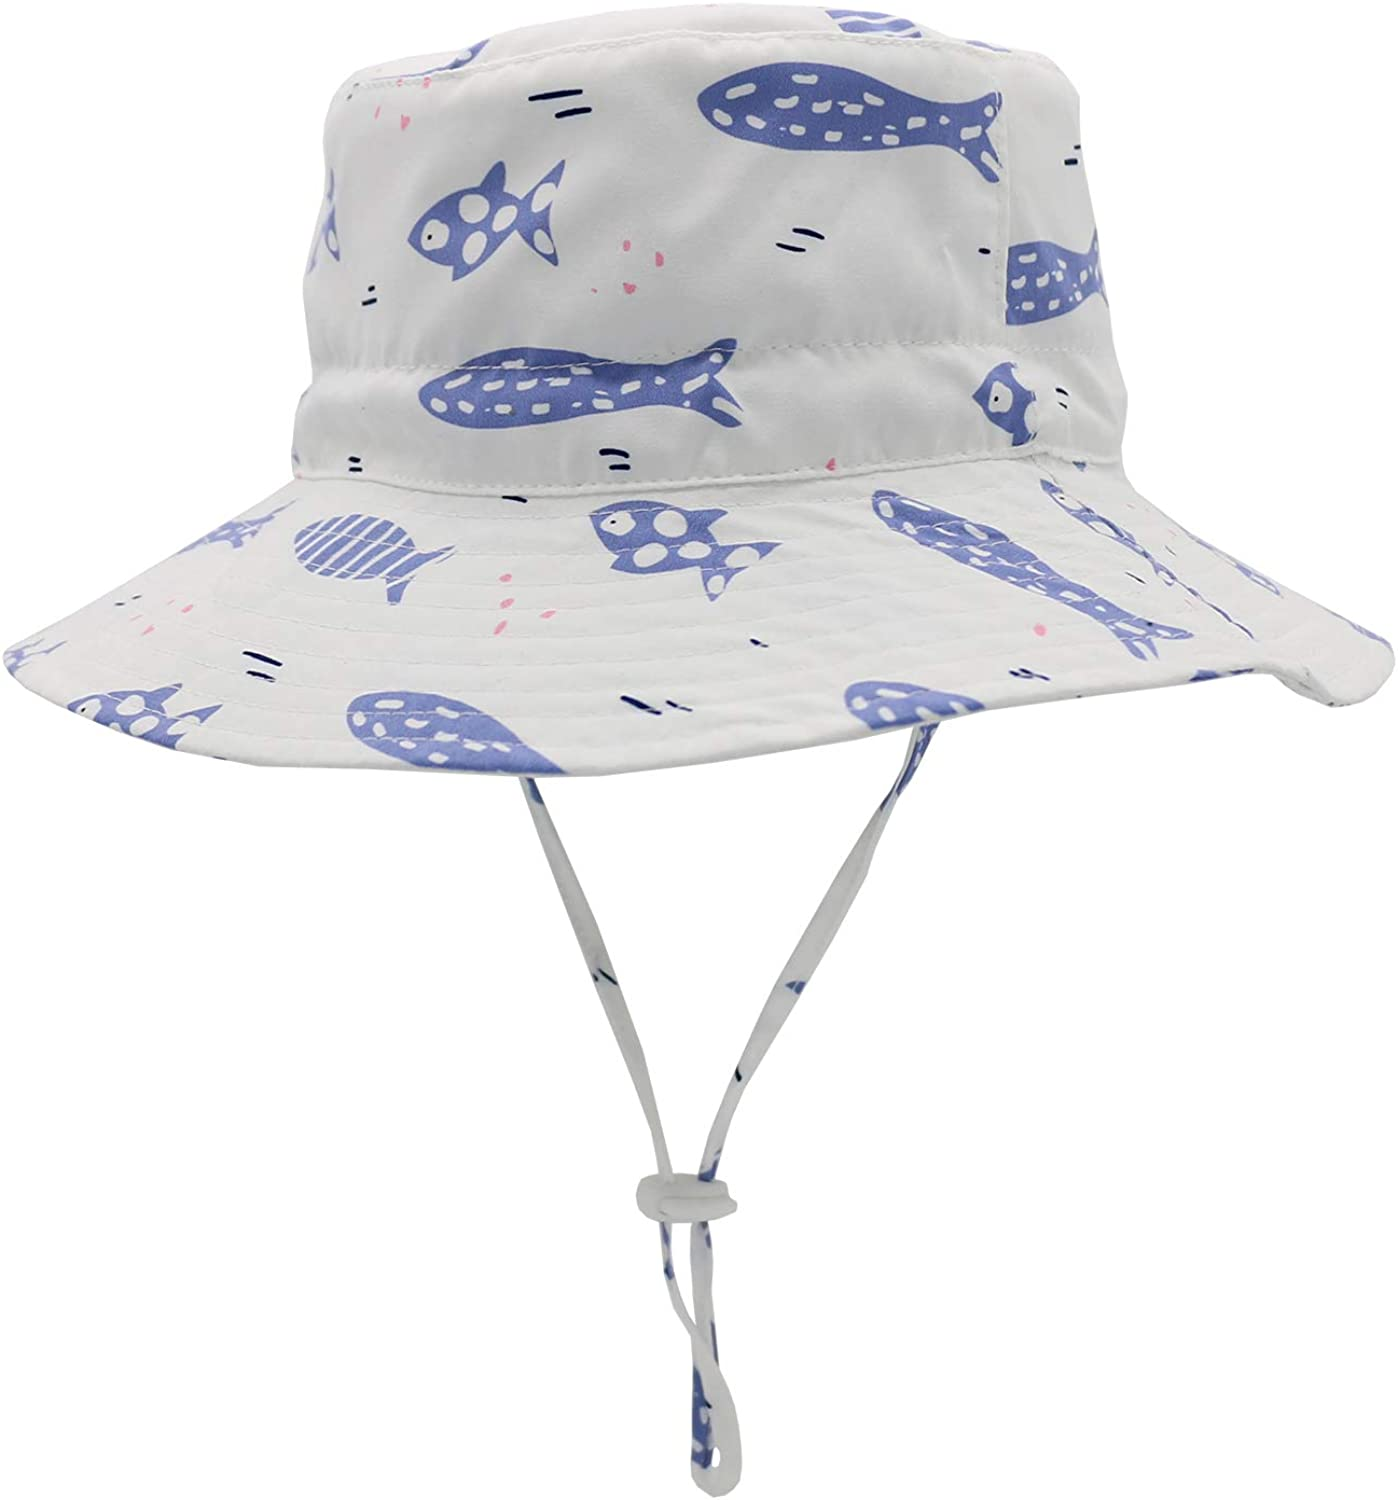 Baby Bucket Hat Kids Beach Hats for Baby Boys Sarfel Baby Sun Hat Toddler Summer Hats UPF 50